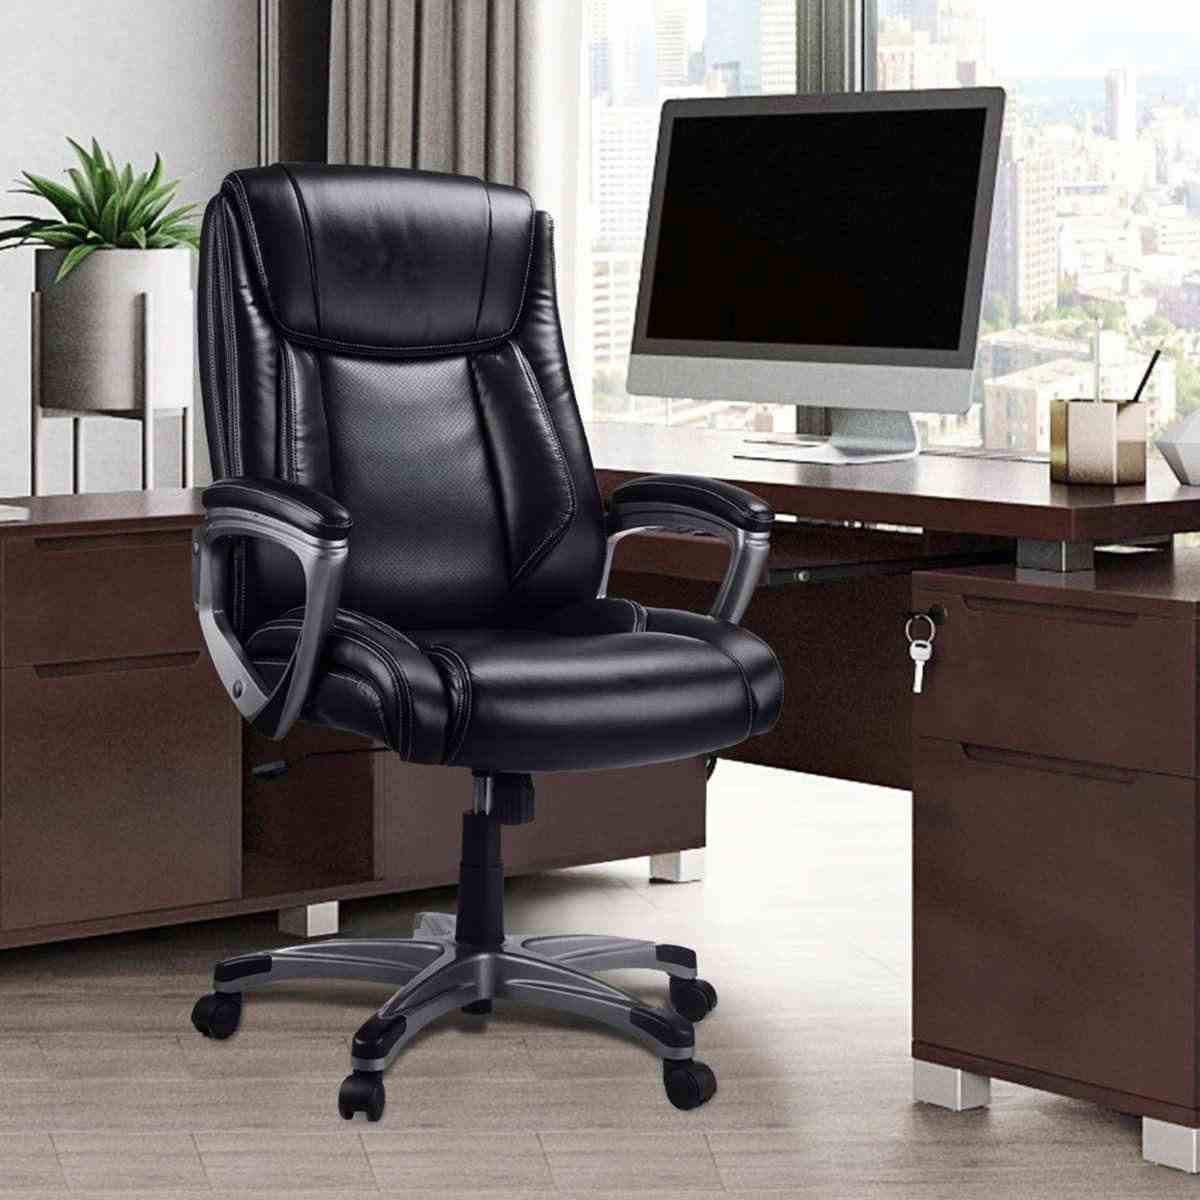 Image of: Special Offer Office Armchair Computer Boss Chair Ergonomic Play Chair Wcg Gaming Ergonomic Computer Chair Seat Reclining Chair Office Chairs Aliexpress